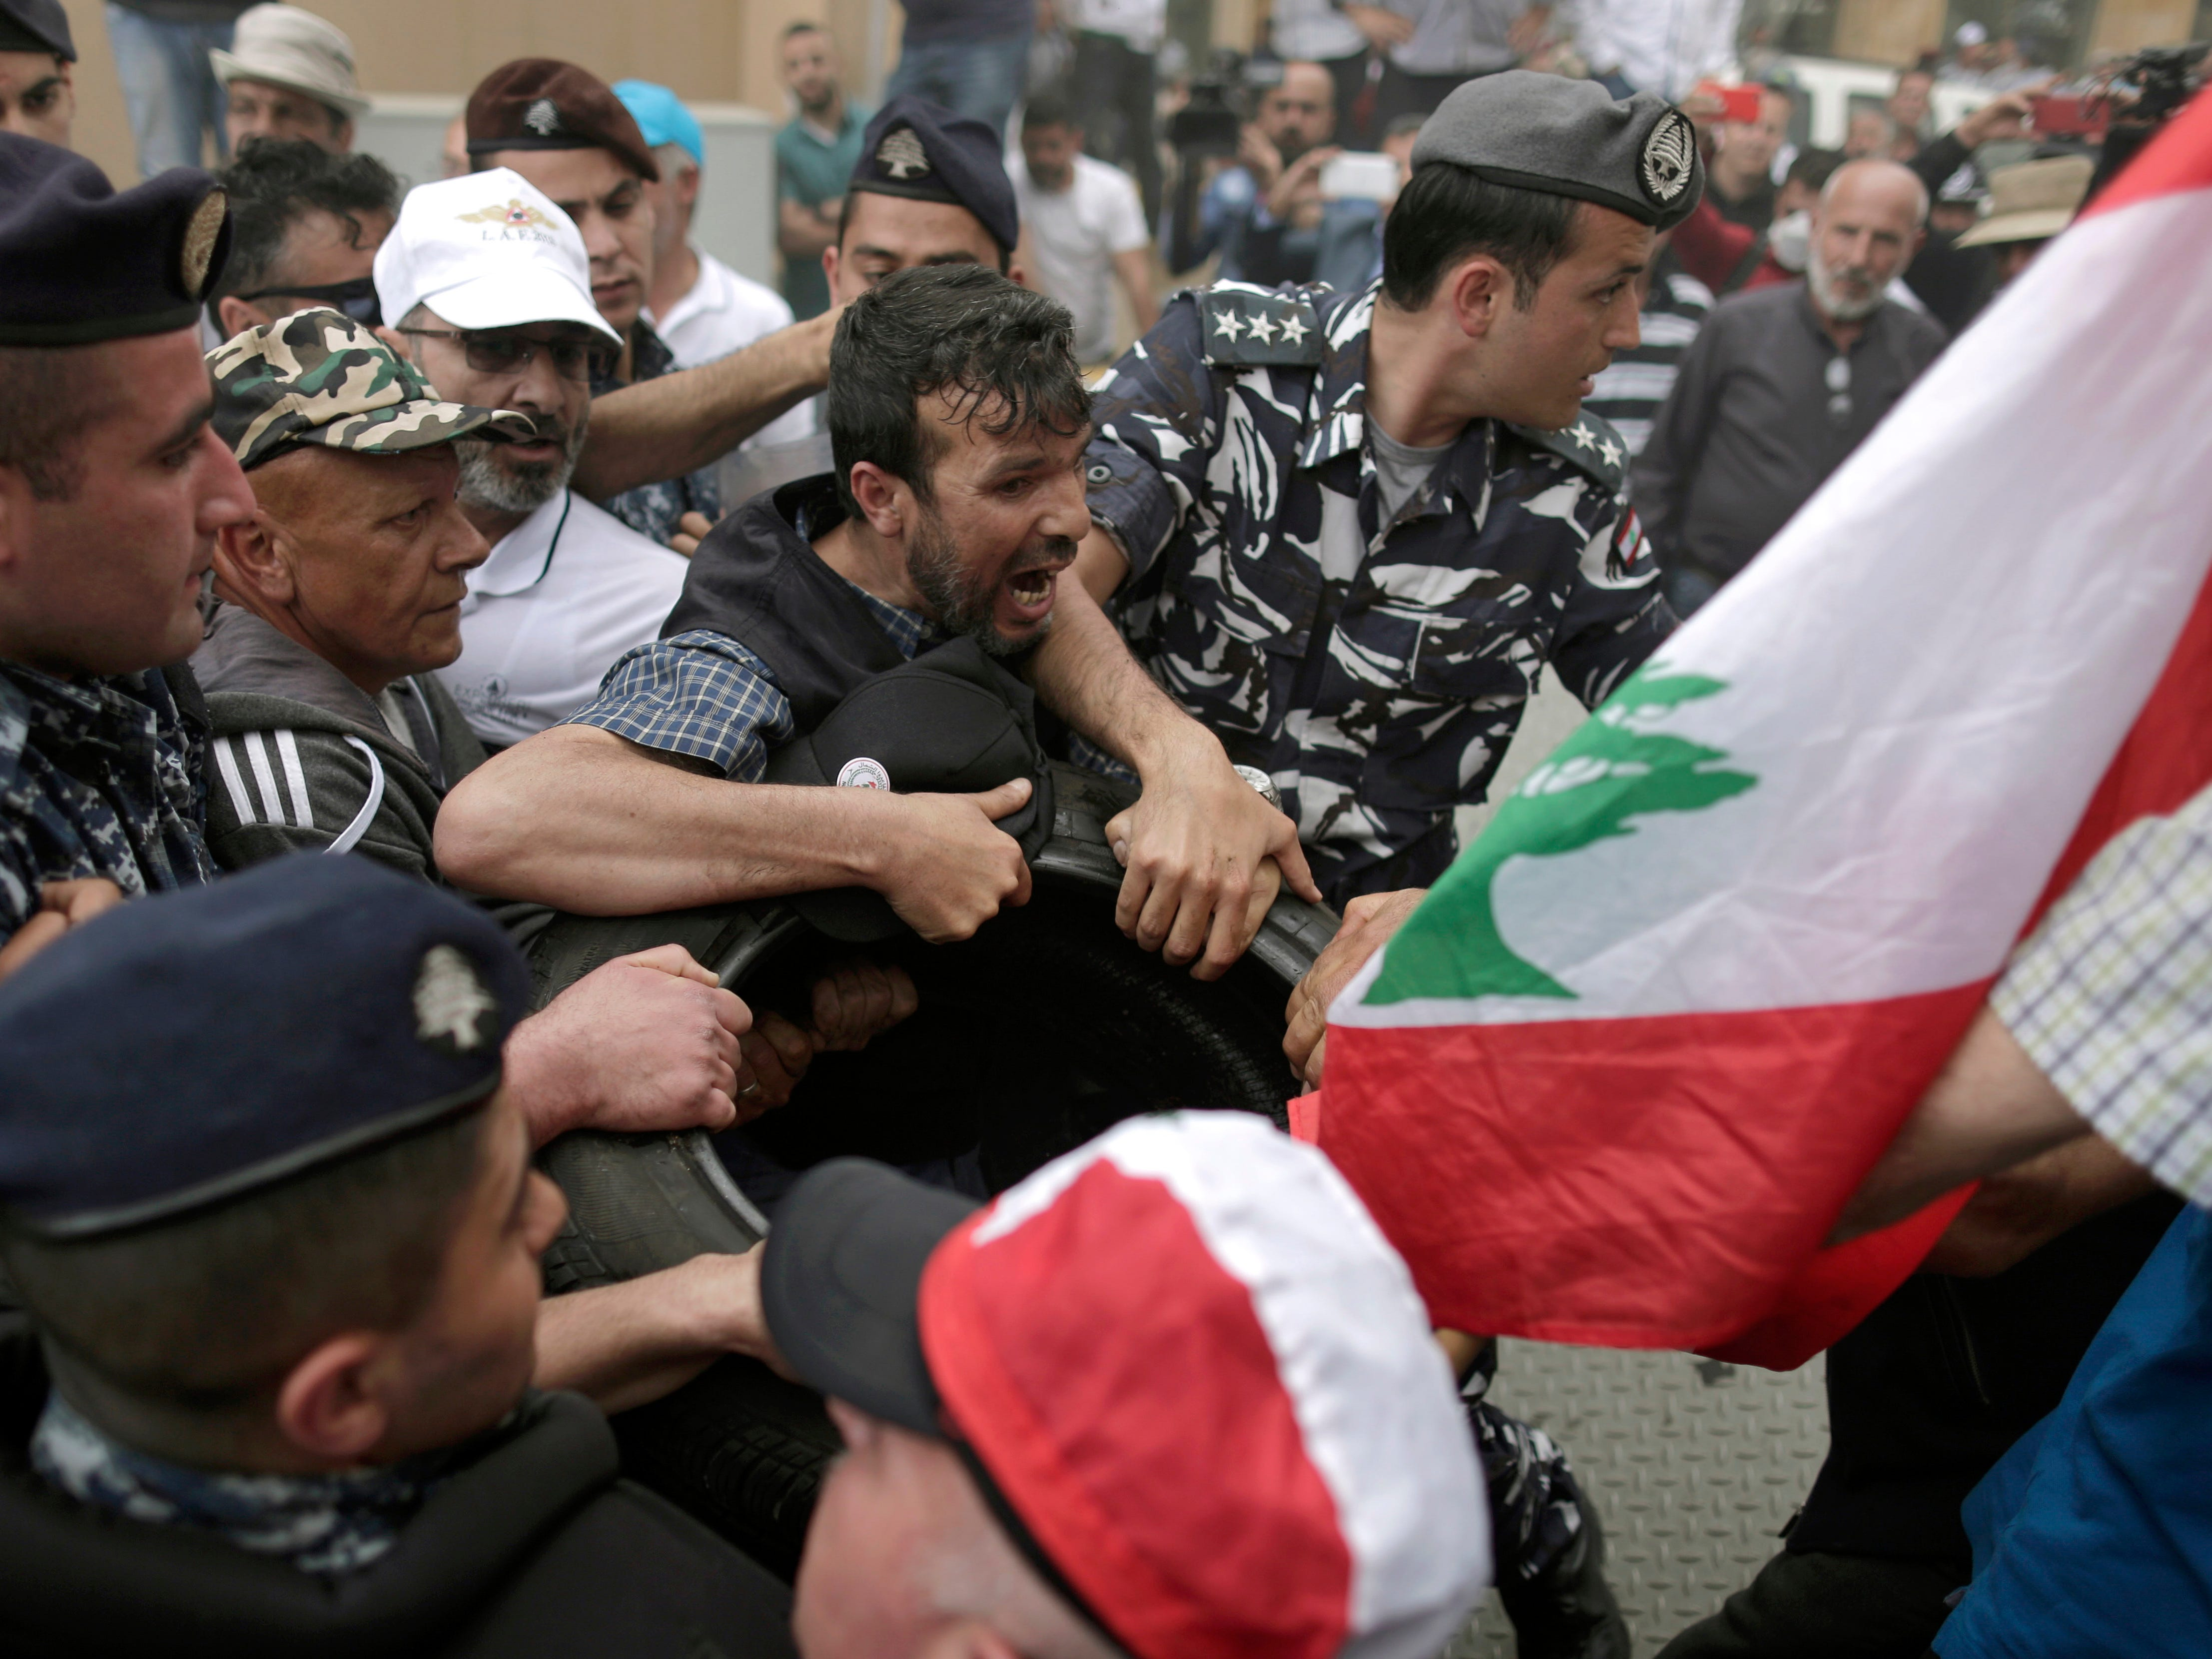 Police scuffle with Lebanese retired soldiers during a protest in front of the government building during a cabinet meeting to discuss an austerity budget, in Beirut, Lebanon, Friday, May 10, 2019. Dozens of Lebanese military and security veterans burned tires and shouted angrily outside government offices on Friday, their second protest in less than two weeks amid fears a proposed austerity budget may affect their pensions and benefits.